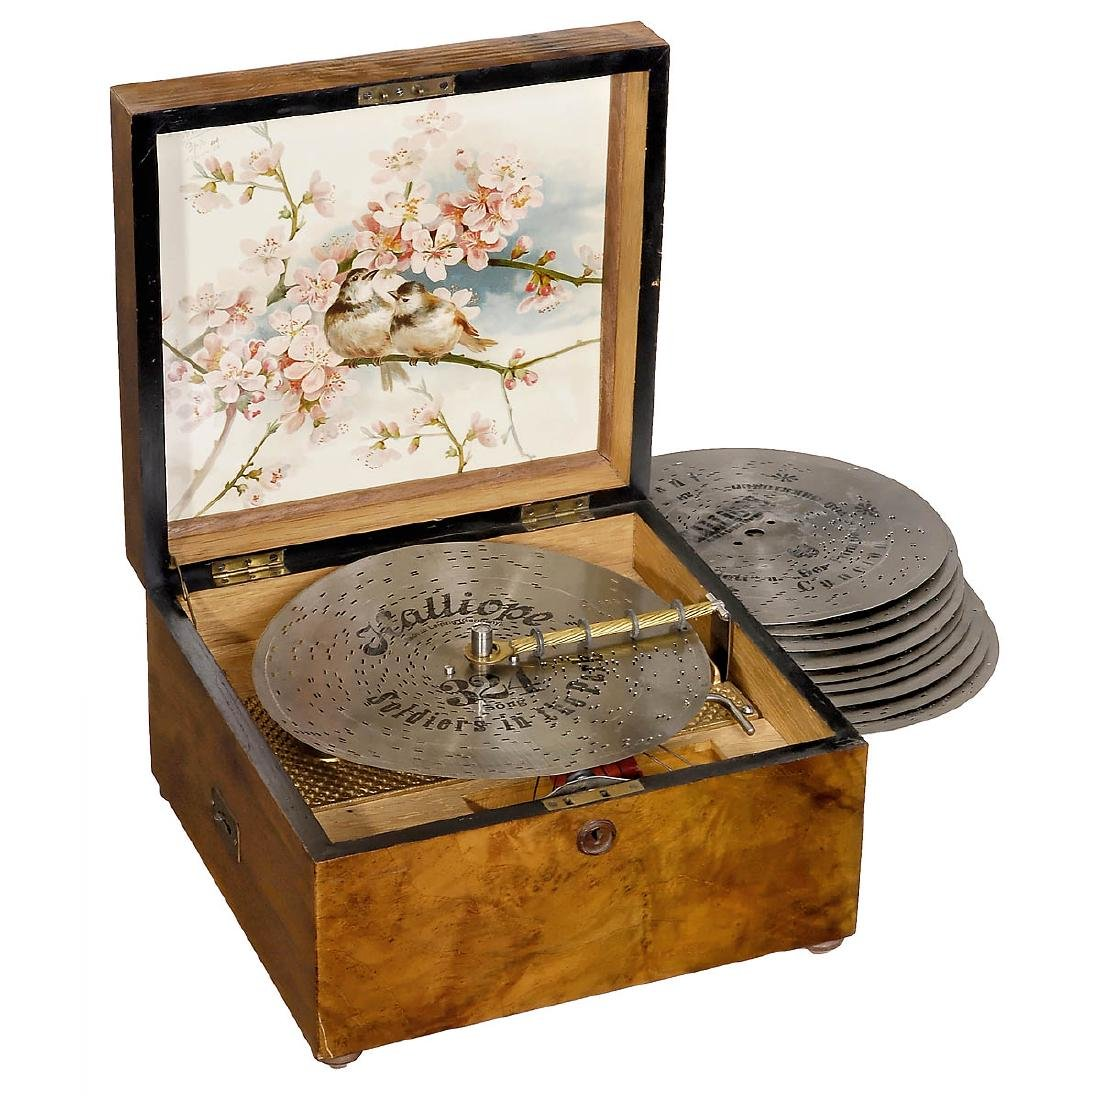 Kalliope No. 50G Disc Musical Box, c. 1900